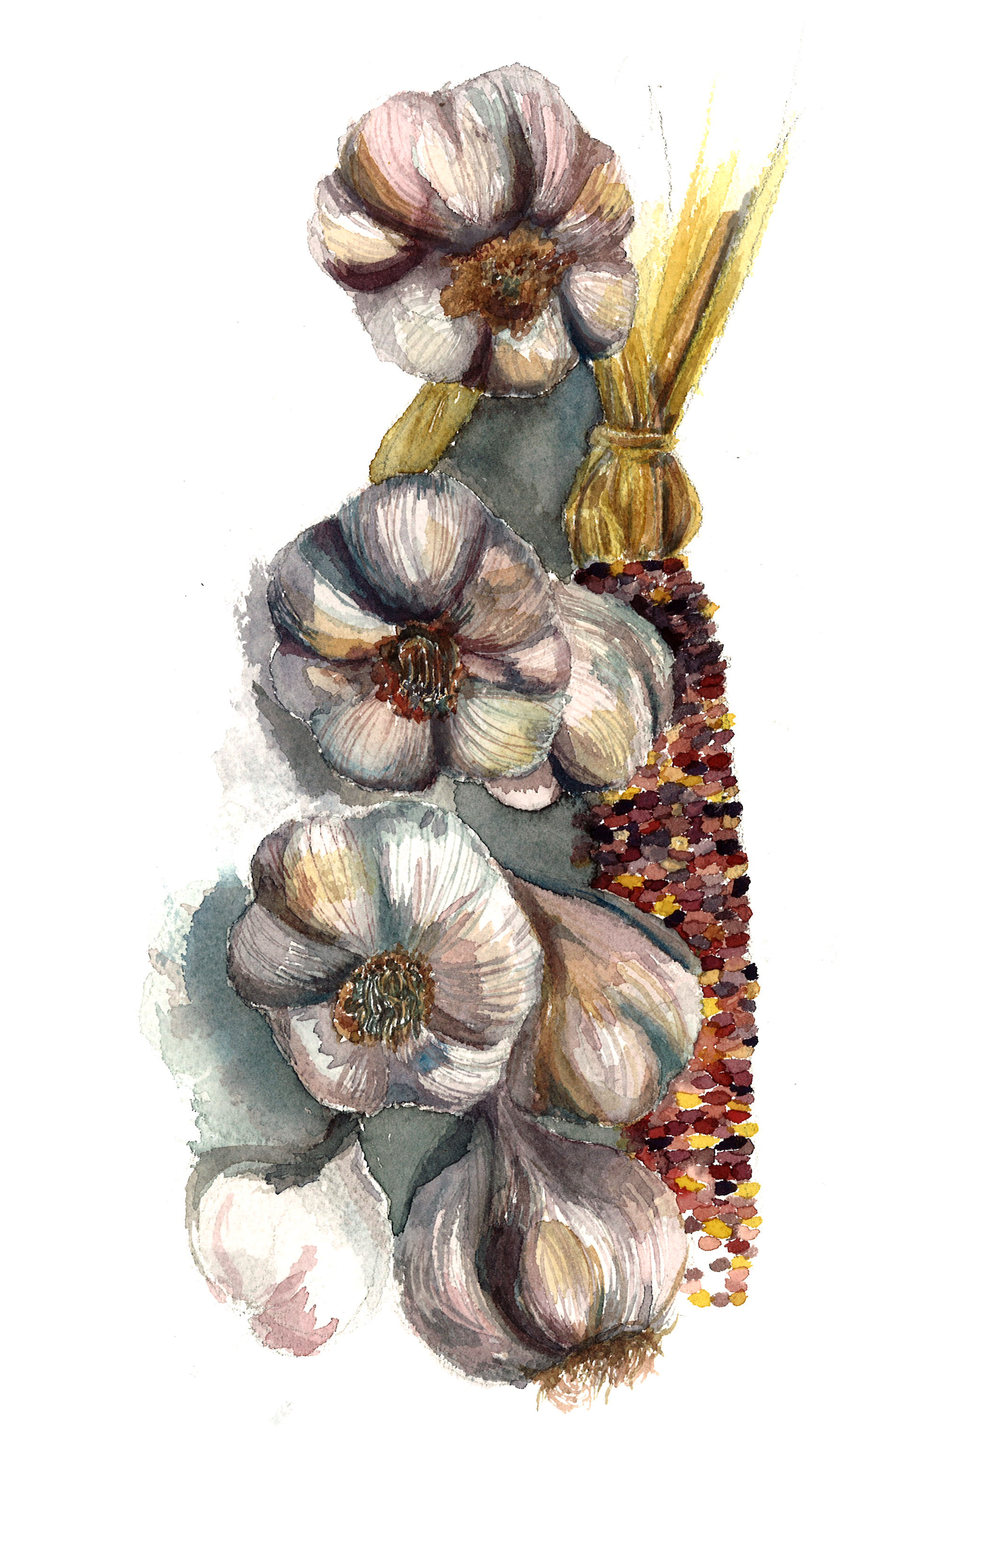 garlic_illustration.jpg